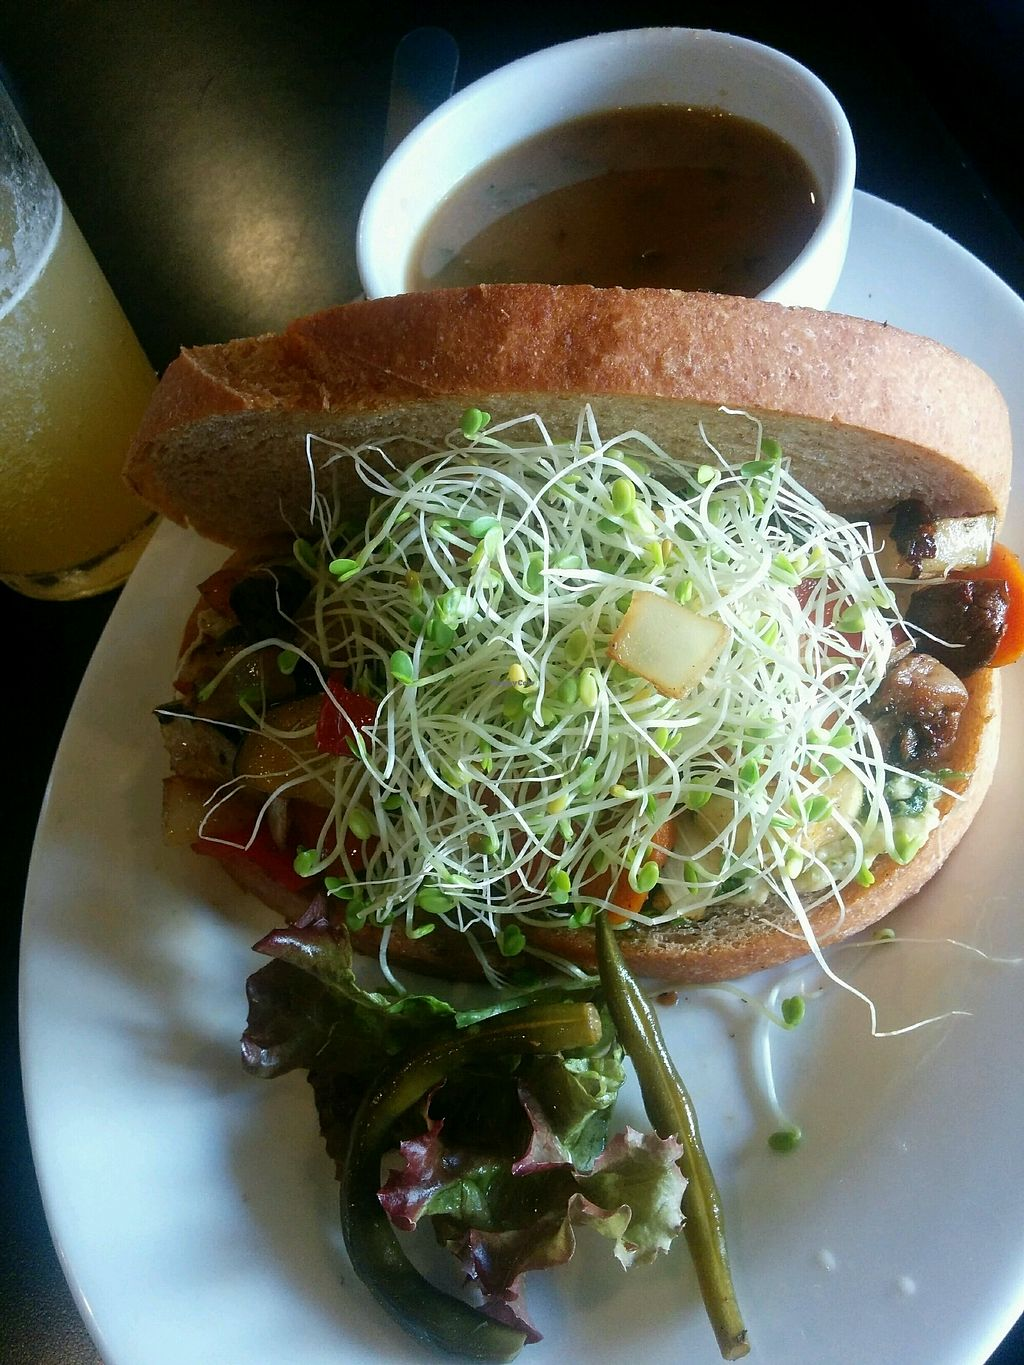 """Photo of Conscious Culture Cafe  by <a href=""""/members/profile/alexandra_vegan"""">alexandra_vegan</a> <br/>Veggie Sammy with miso soup on the side <br/> October 2, 2017  - <a href='/contact/abuse/image/48712/310896'>Report</a>"""